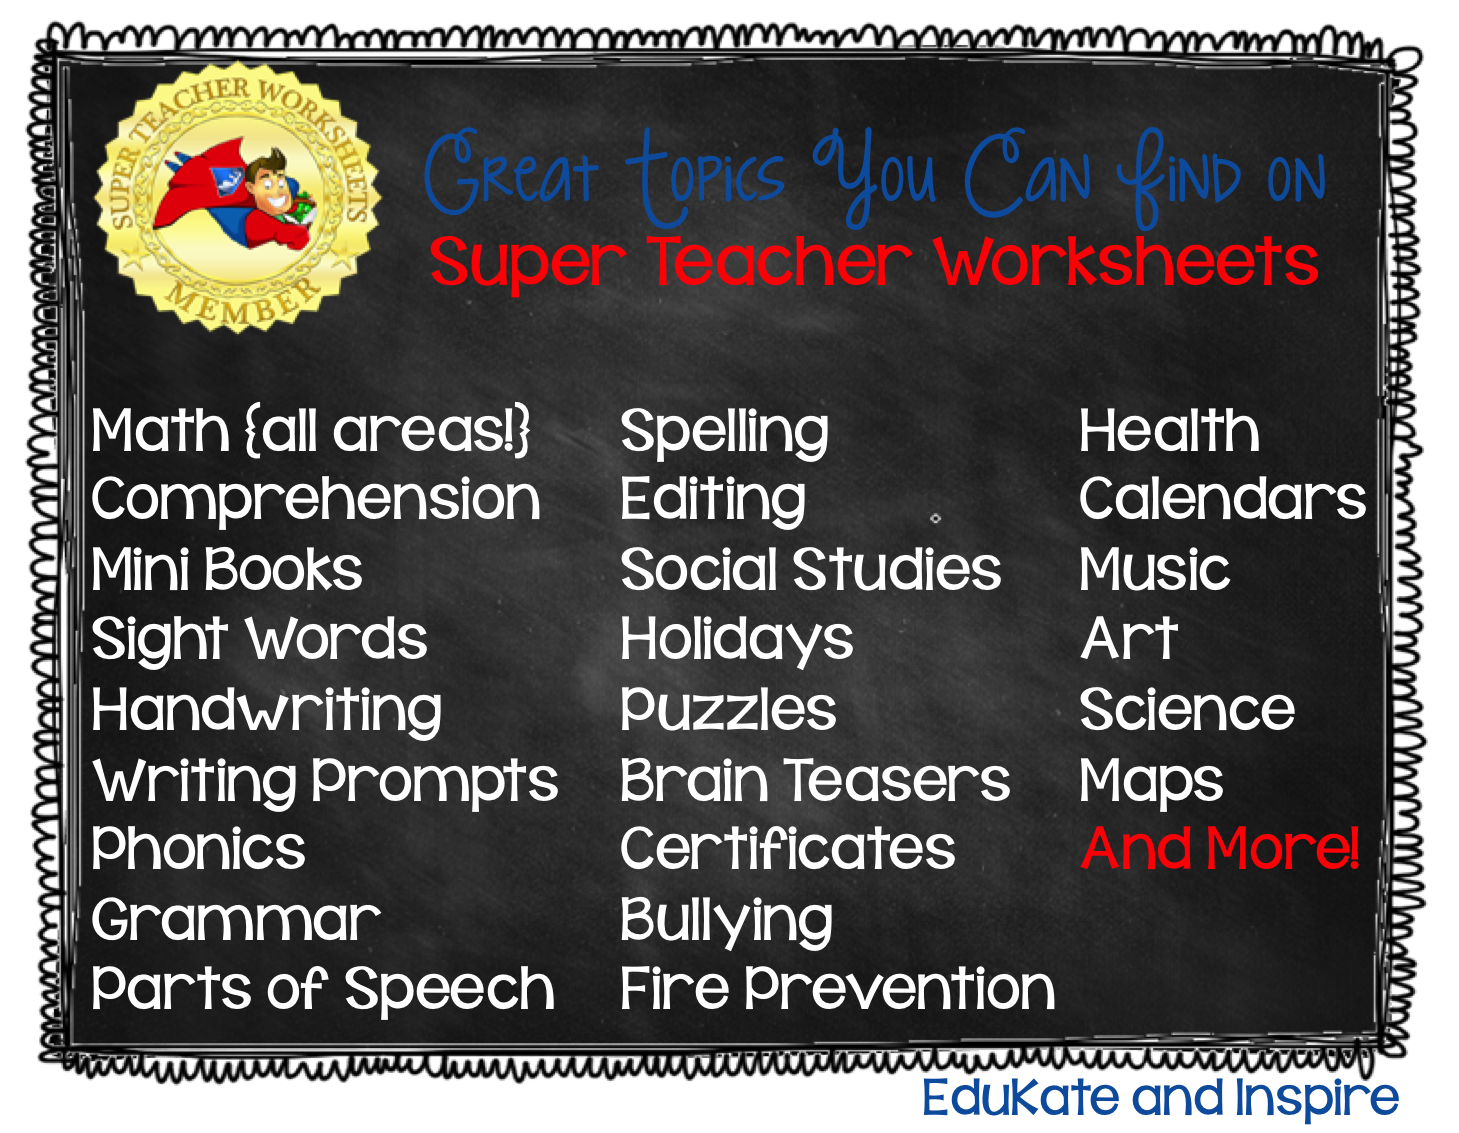 Super Teacher Worksheets A Review And Giveaway